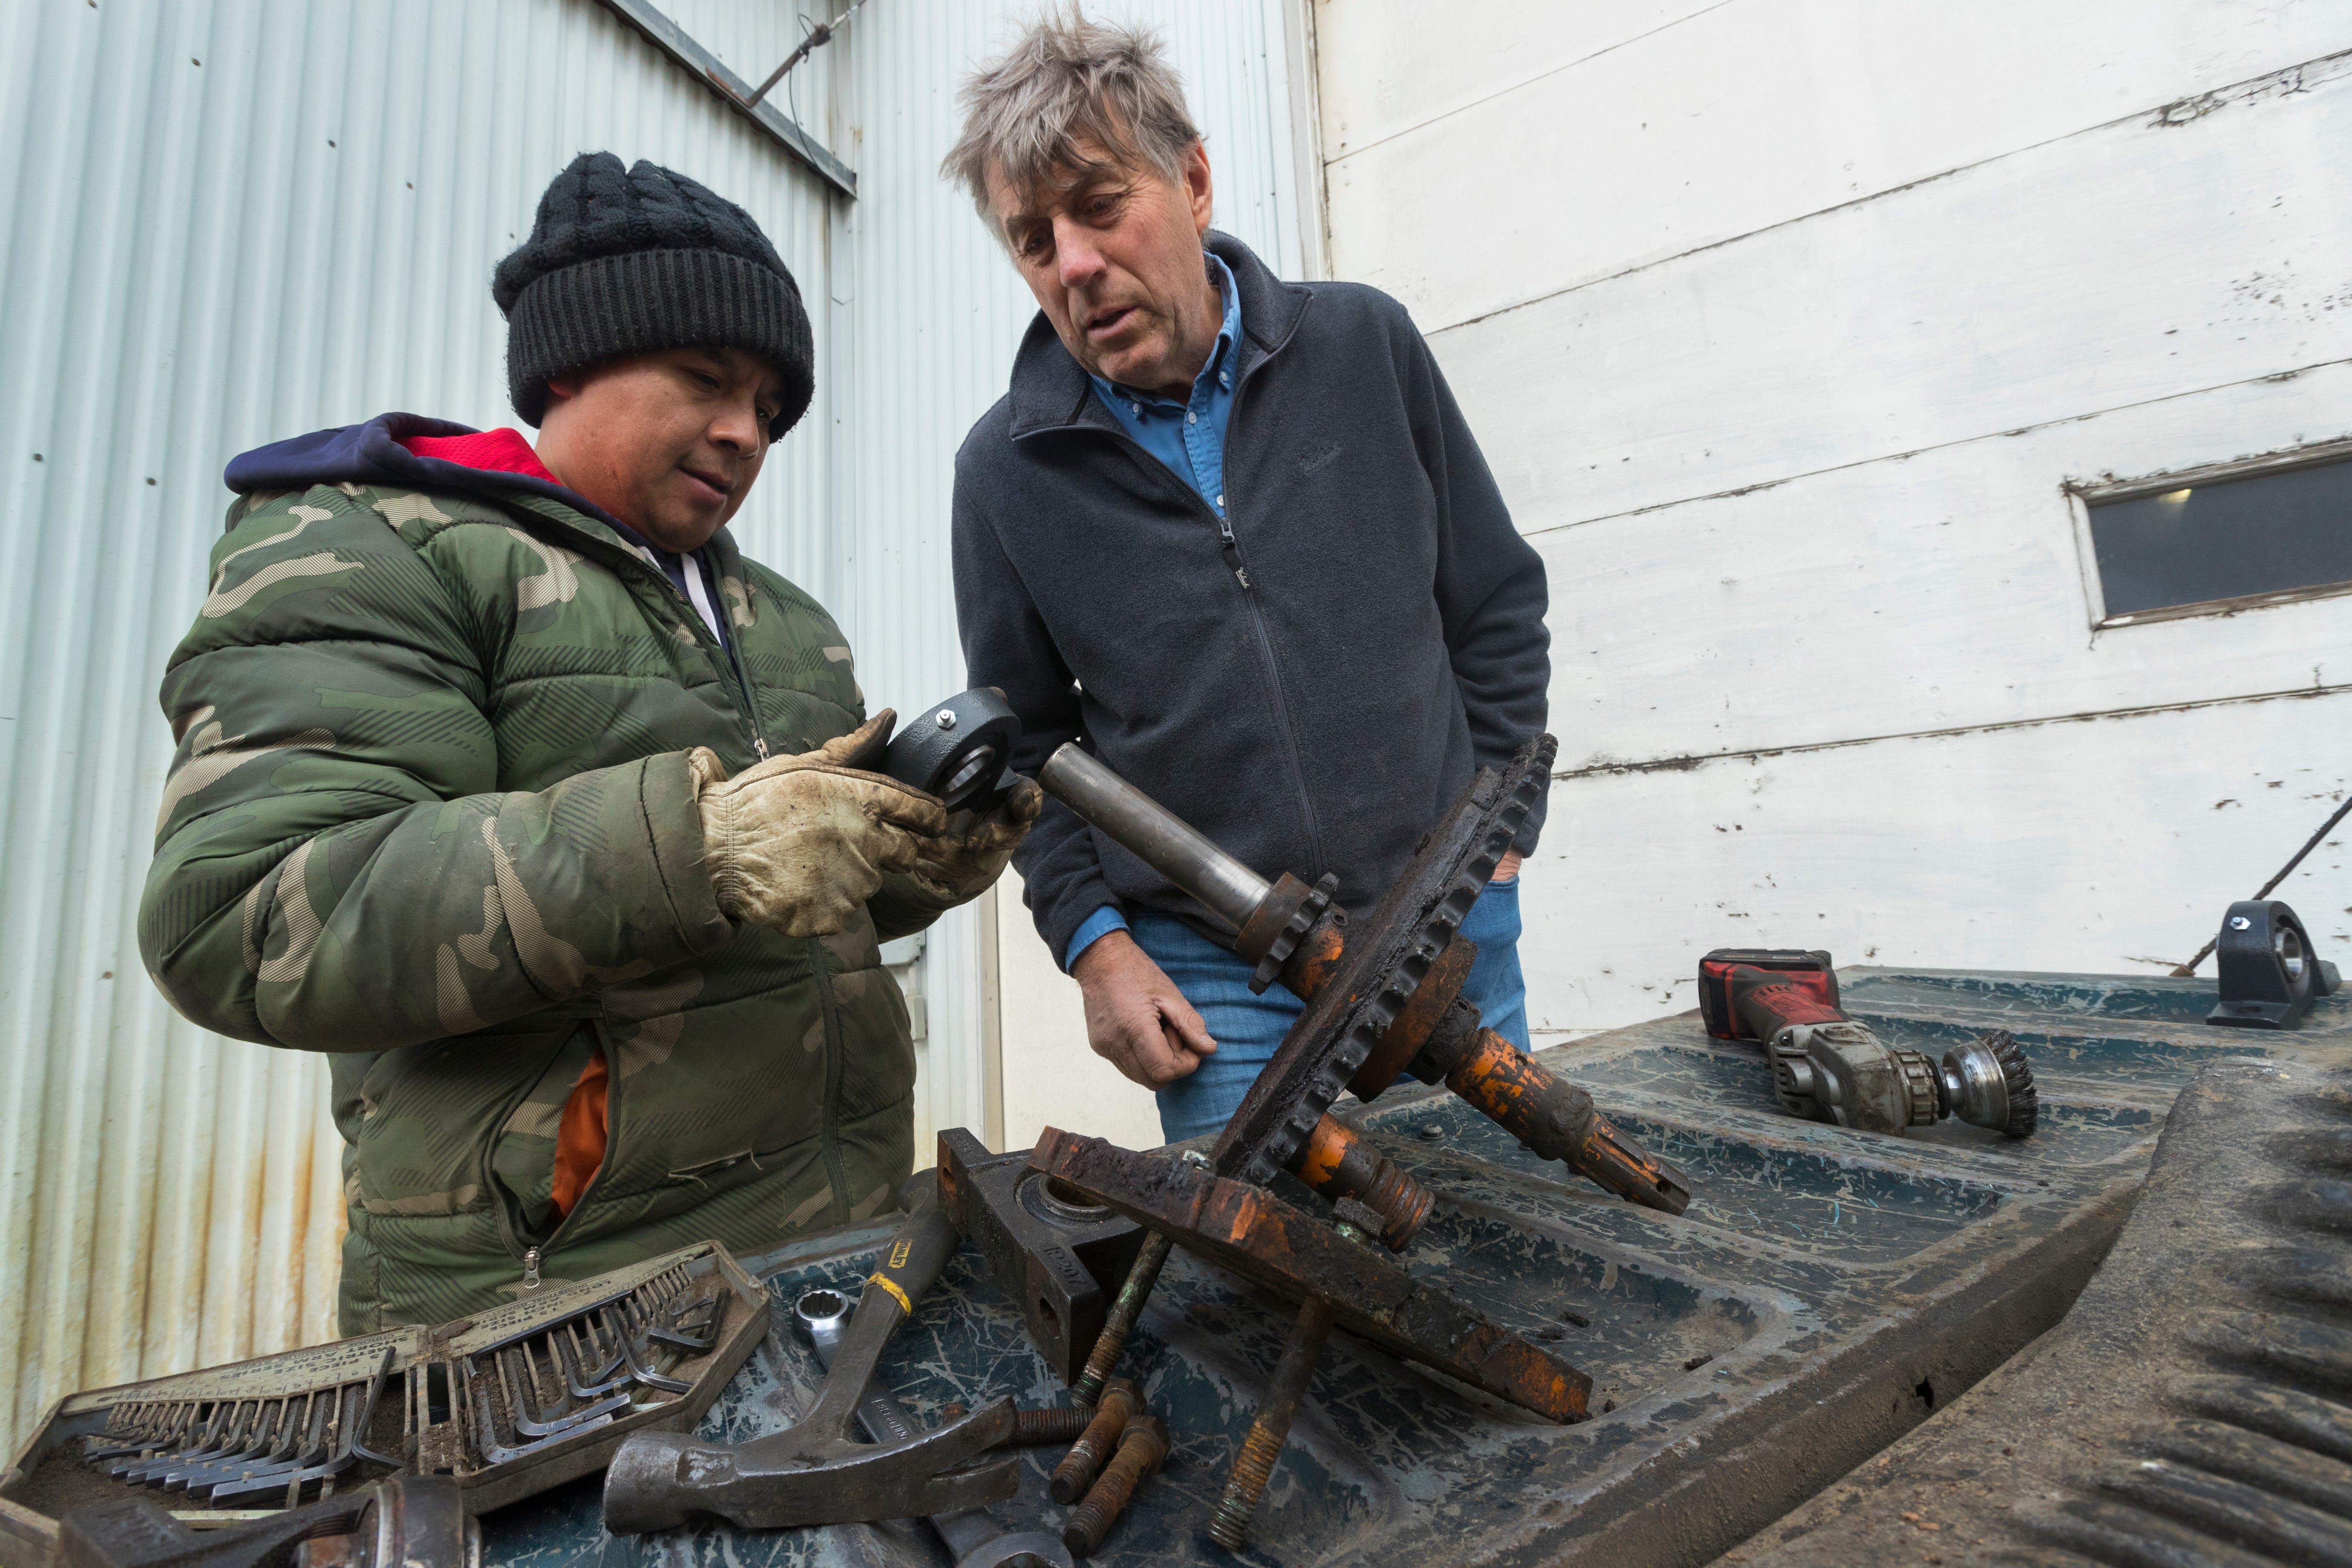 Roberto Tecpile, left, a Mexican immigrant, replaces the bearings while repairing an irrigator with the help of dairy farm owner John Rosenow at Rosenholm Dairy in Cochrane.